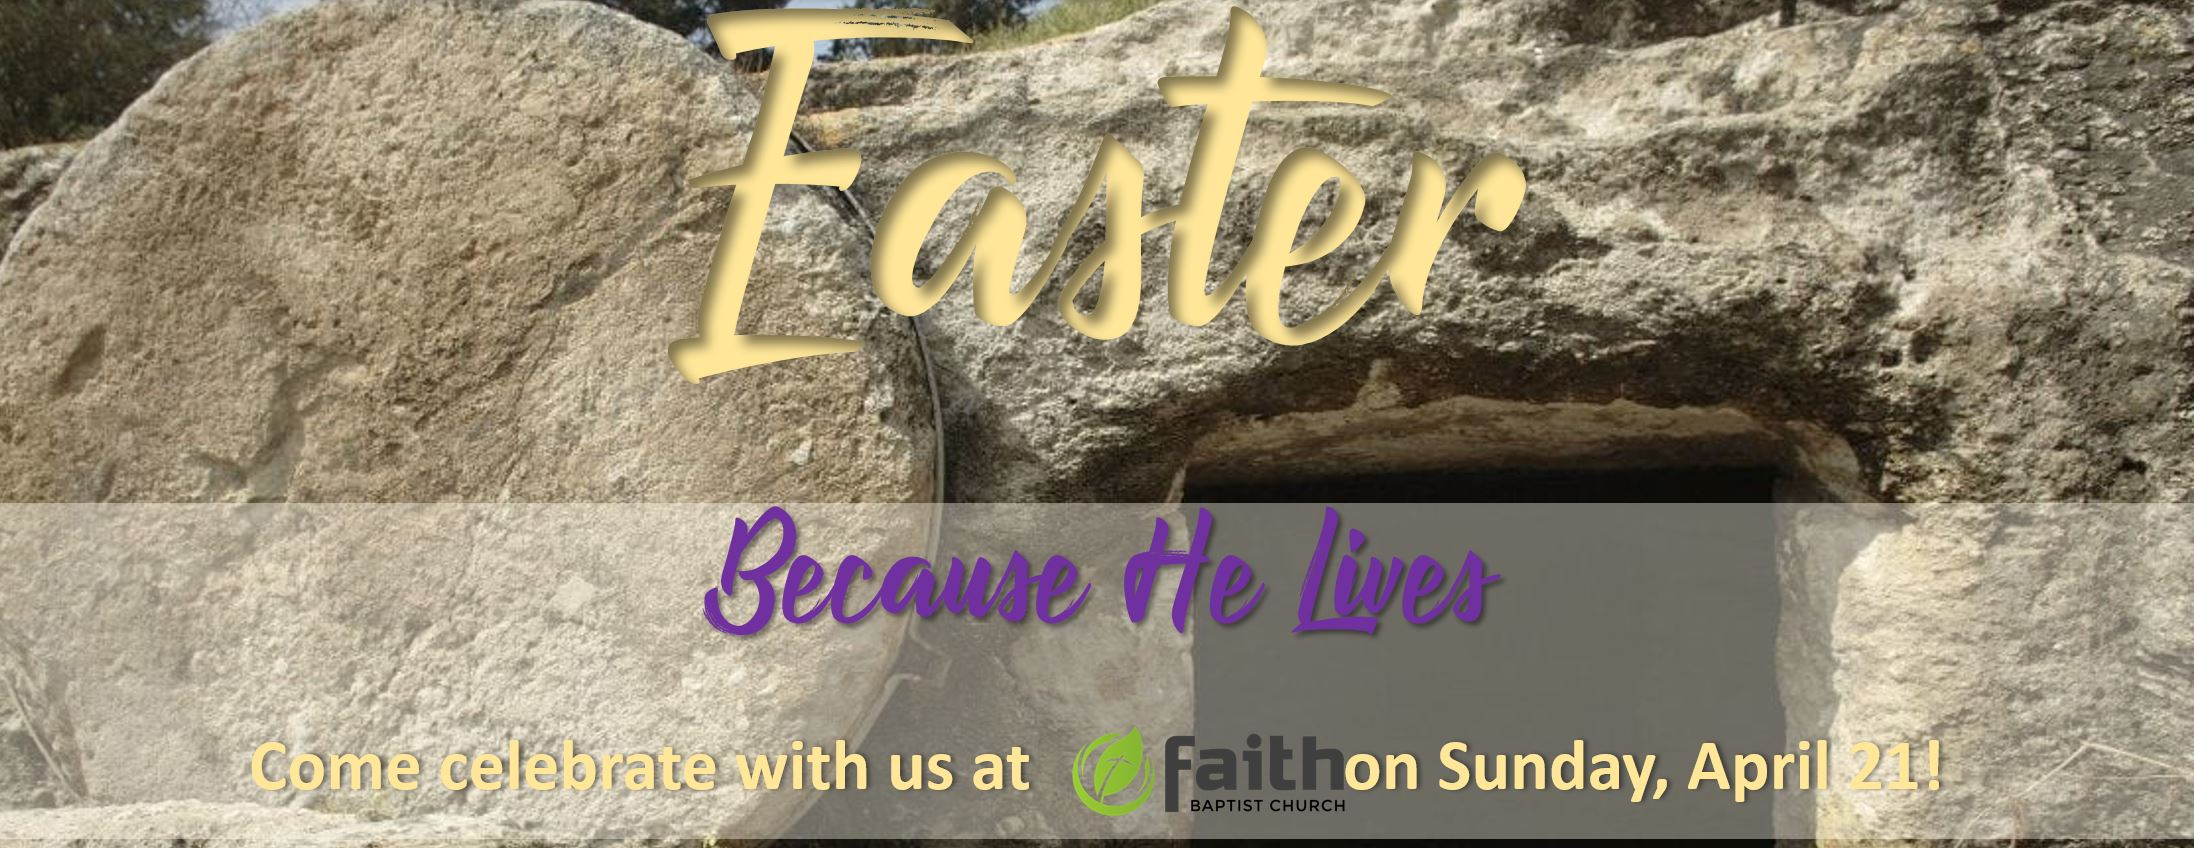 Because He Lives - Easter Sunday